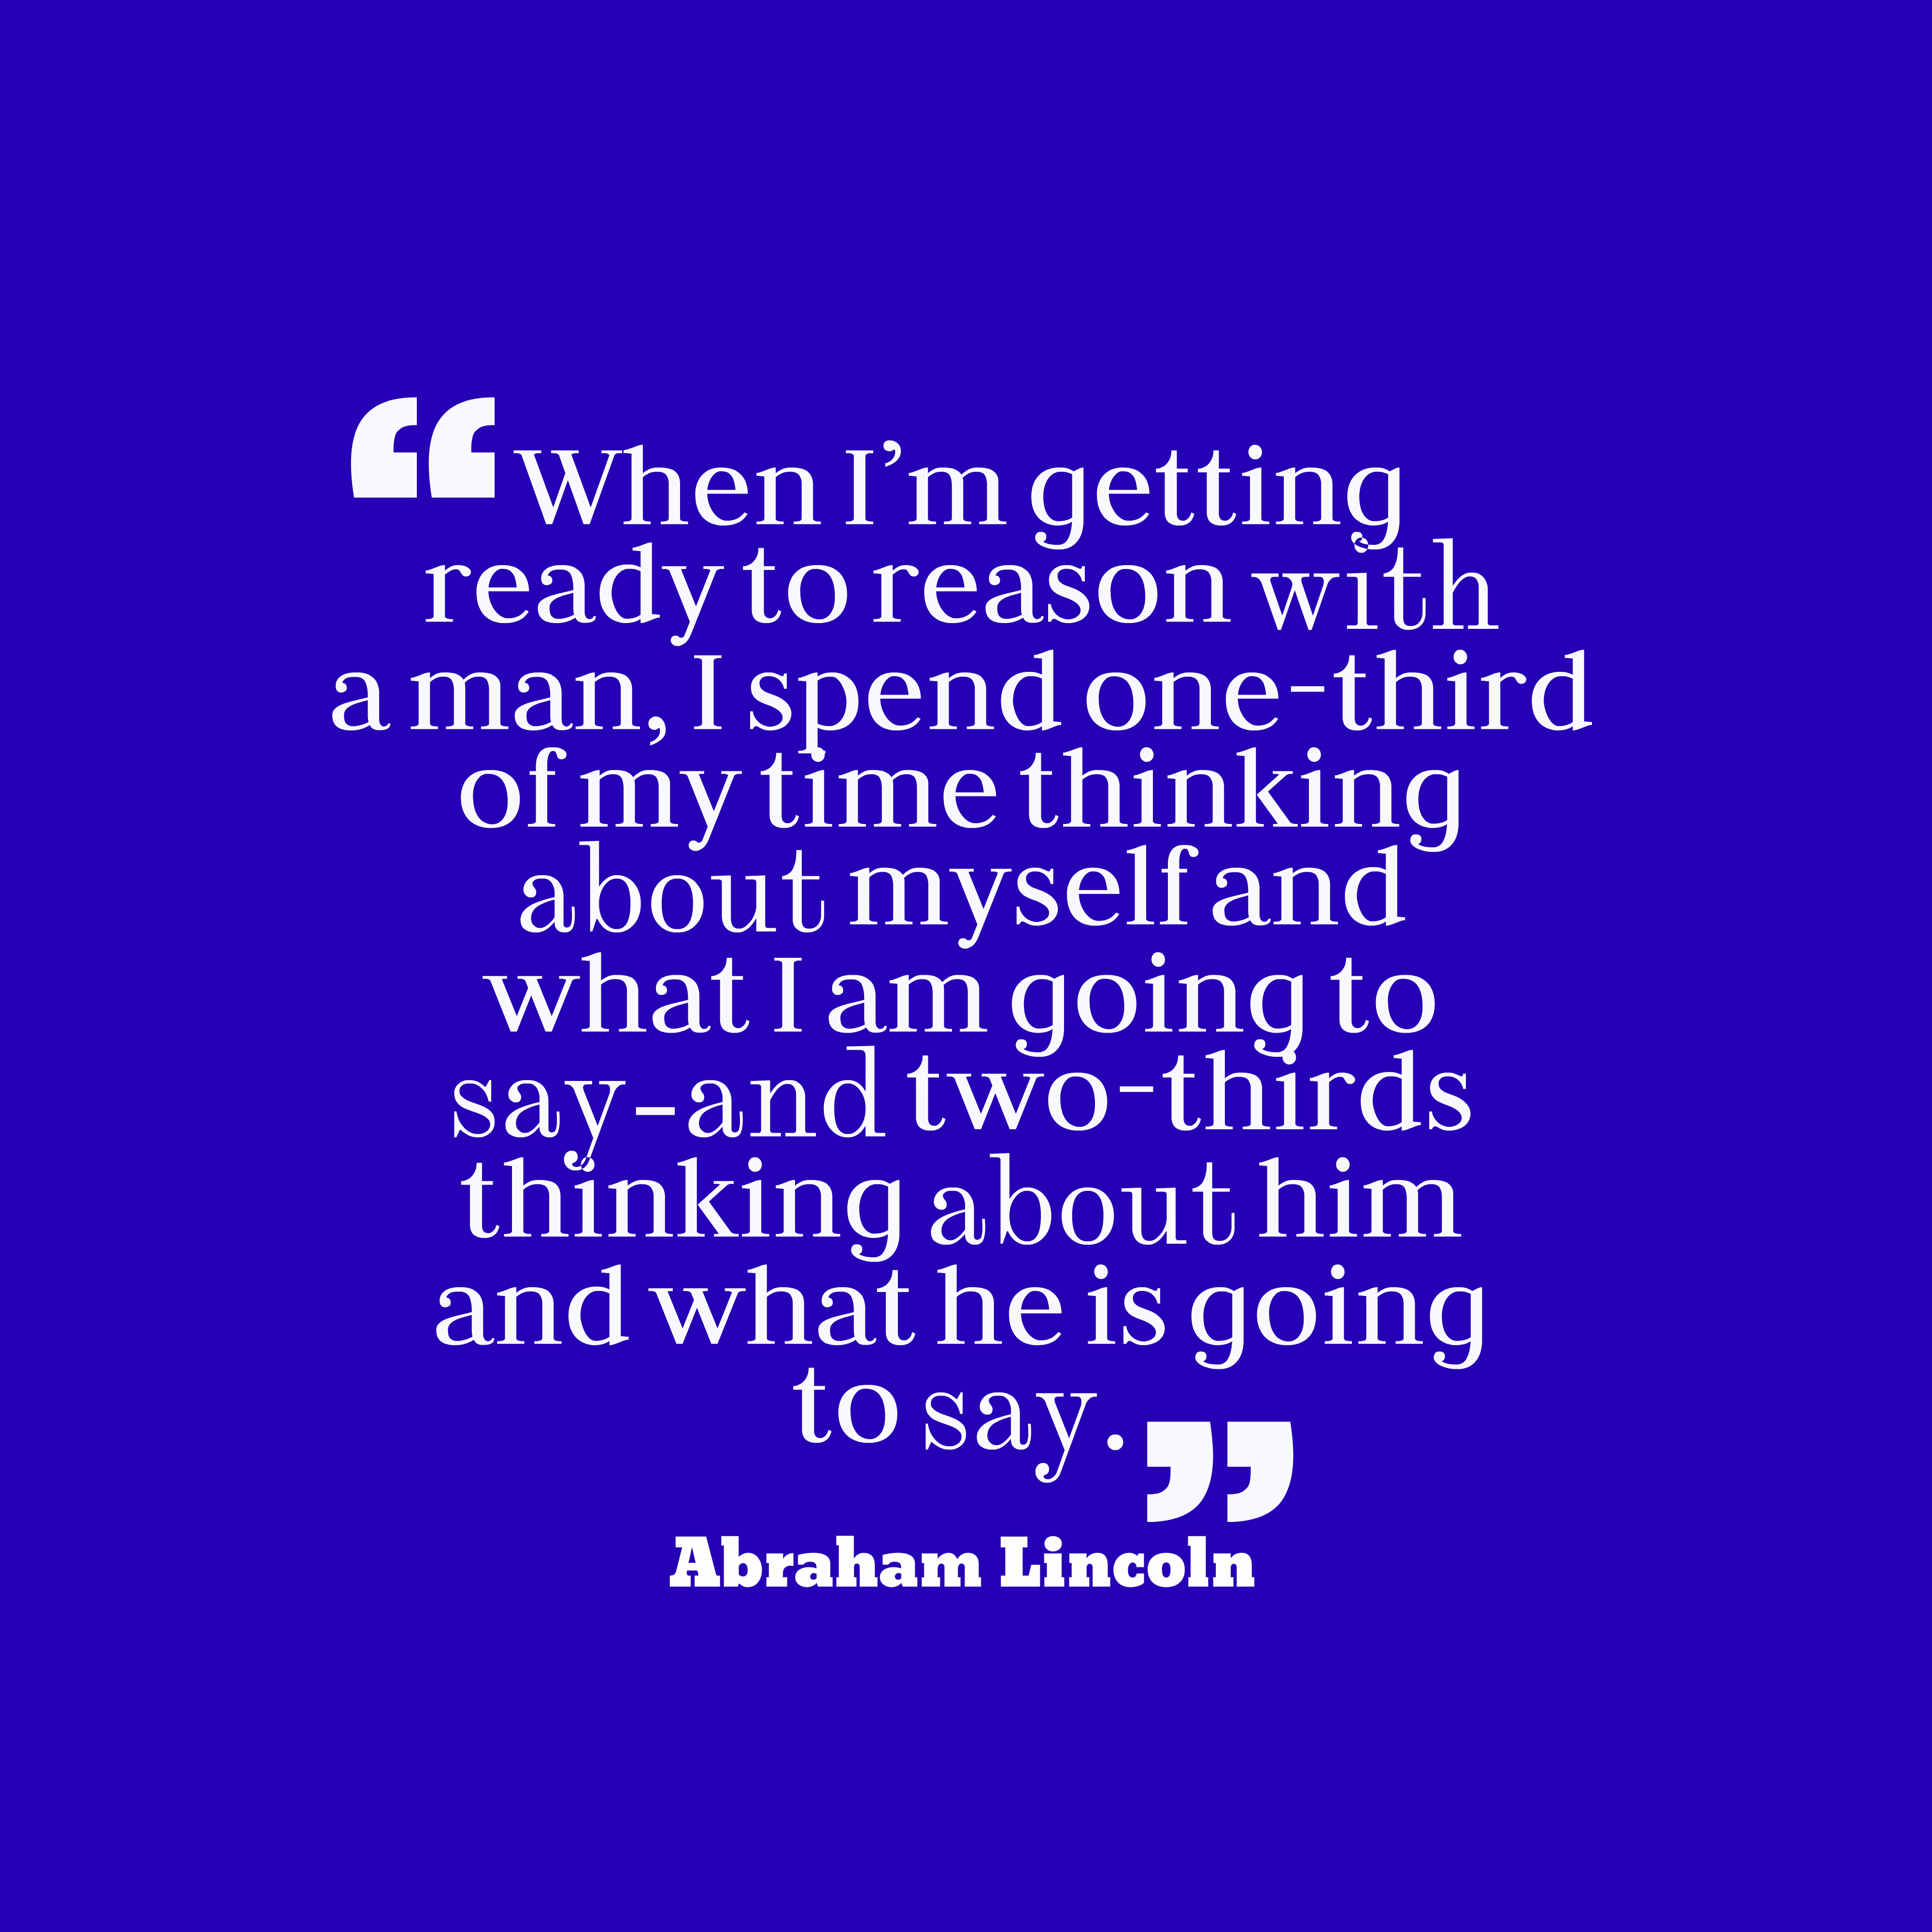 Quotes image of When I'm getting ready to reason with a man, I spend one-third of my time thinking about myself and what I am going to say-and two-thirds thinking about him and what he is going to say.